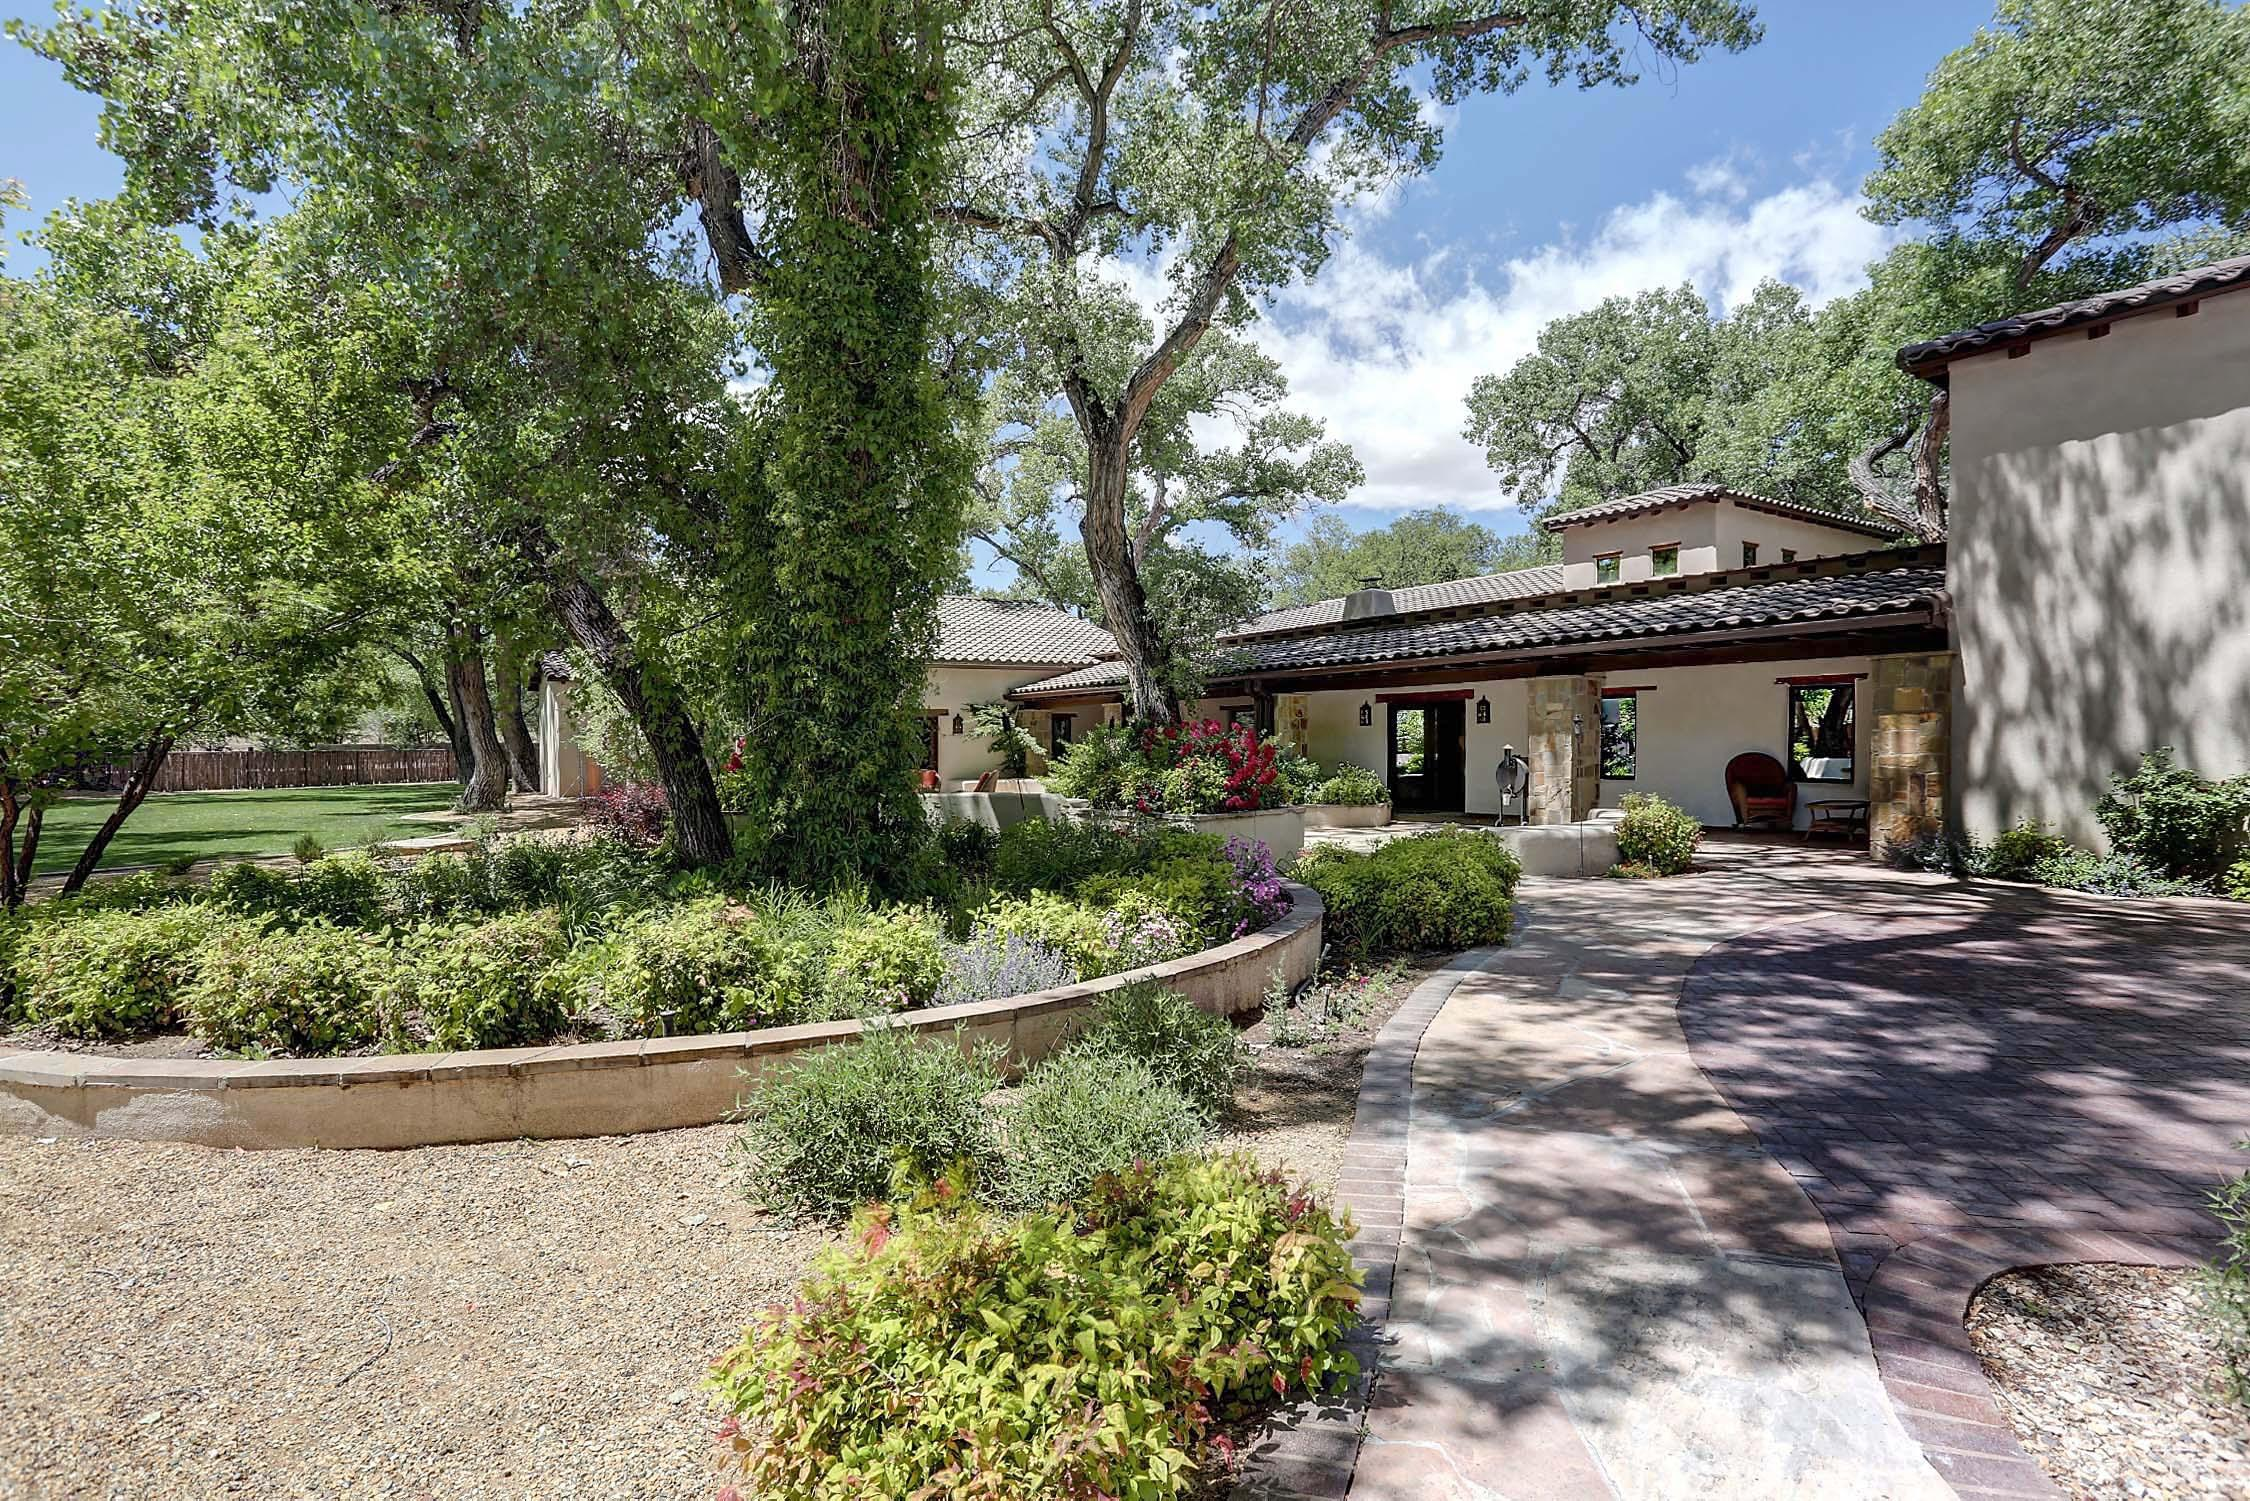 Travel Down a Cottonwood Lined Lane and Be Transported to Another World * Behind the Custom Metal Gate a One of a Kind Compound Awaits on Three Glorious, Wooded, Fenced Acres Abutting the Bosque and River * Understated Elegance in a 5981 SF Main House, 1605 SF Casita, and 1655 SF Guest Quarters/Gym/Office * Fully Walled Swimming Pool with Bath House * Eight Garage Spaces * Three Stall Horse Barn with Tack Room * Direct Horse and Walking Access to Bosque Trails * The Main House Is a True Work of Art with Generous Use of Natural Materials and Quality Finishes * A Classic New Mexican Adobe Transformed with Modern Features and Amenities * Geo Thermal Heating/Cooling * Architectural Digest Kitchen with Timbered Ceilings, Fireplace, Wolf/Sub-Zero/Thermador Appliances